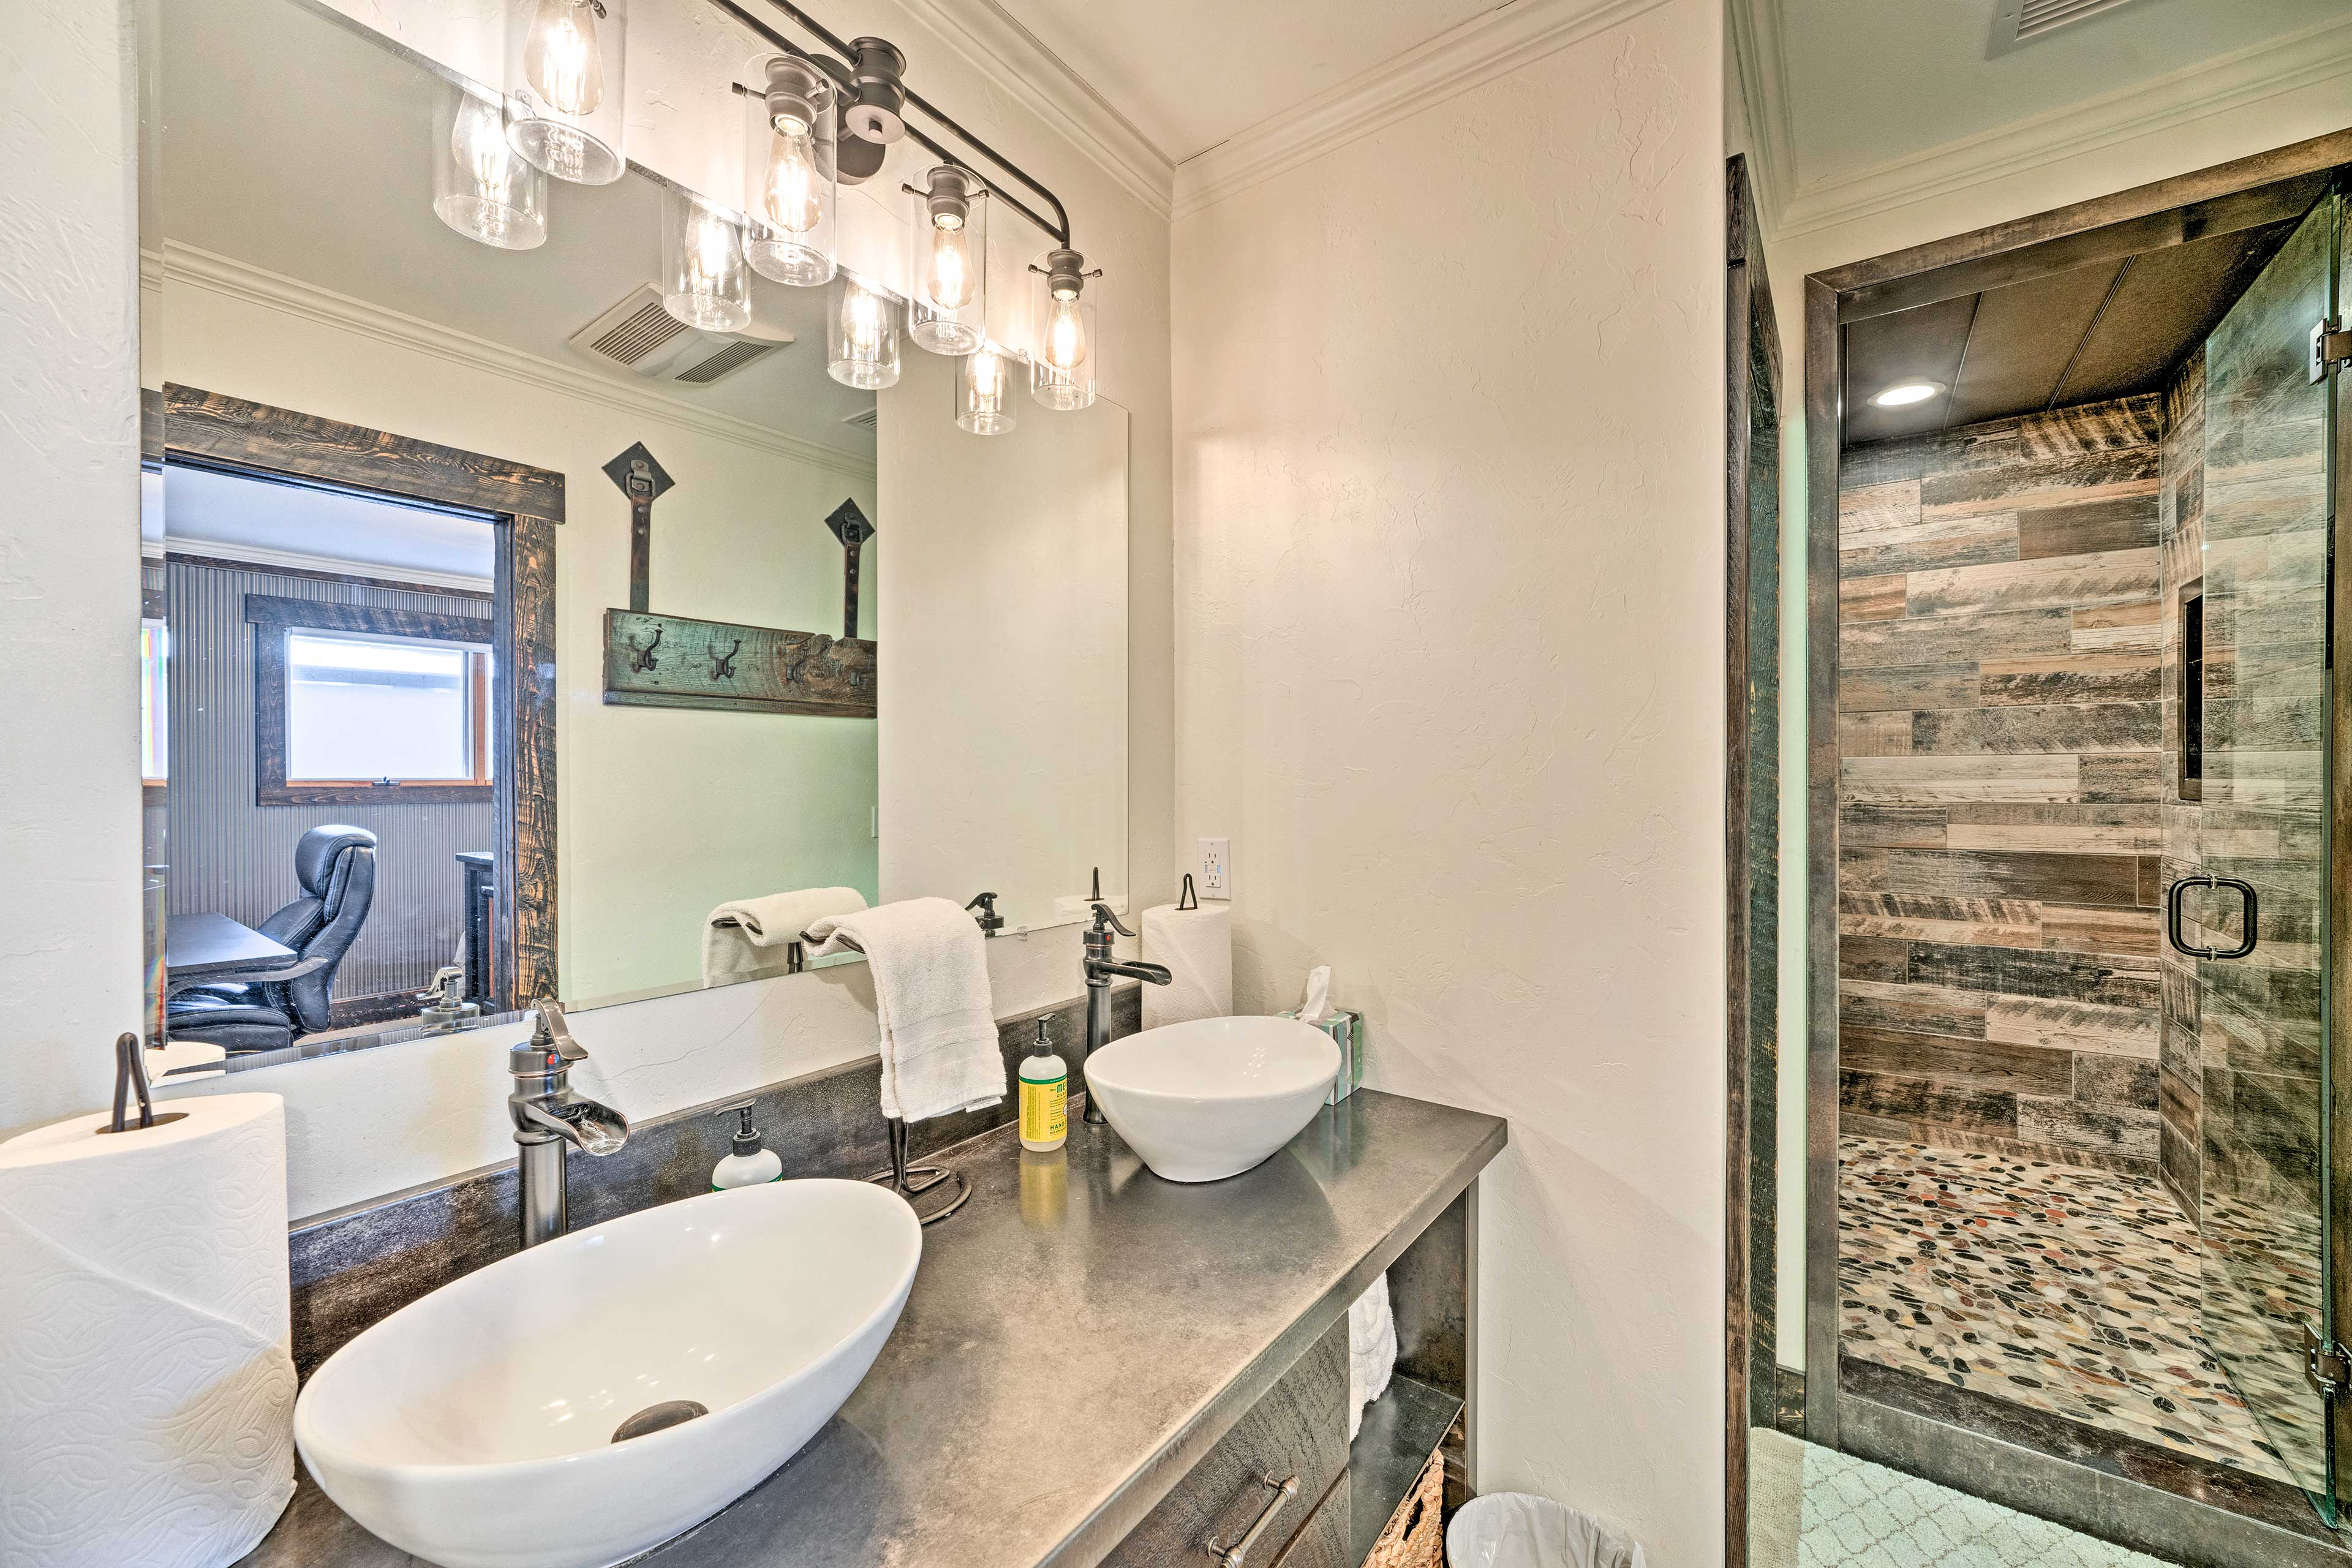 Visit the en-suite bathroom in the morning to start your day with a shower.